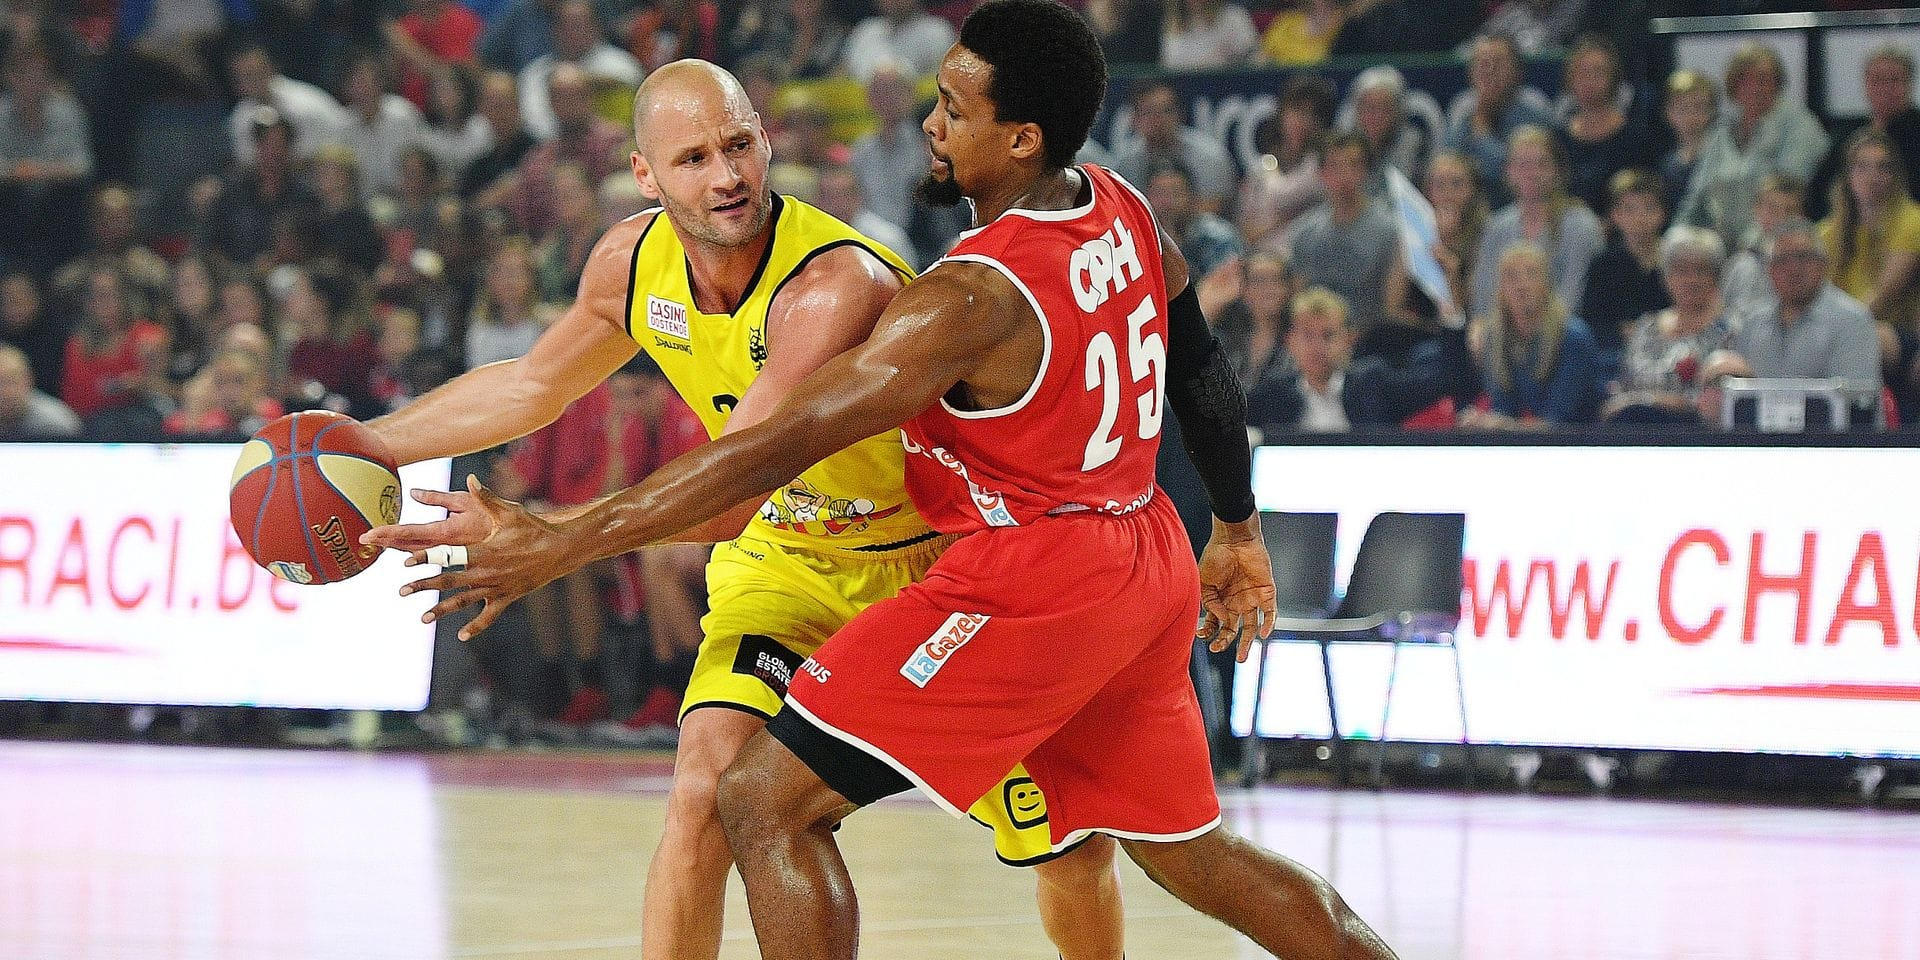 Oostende's Dusan Djordjevic and Charleroi's Cliff Hammonds pictured in action during the basketball match between Spirou Charleroi and BC Telenet Oostende, Friday 12 October 2018 in Charleroi, the third game of the 'EuroMillions League' Belgian first division. BELGA PHOTO DAVID STOCKMAN